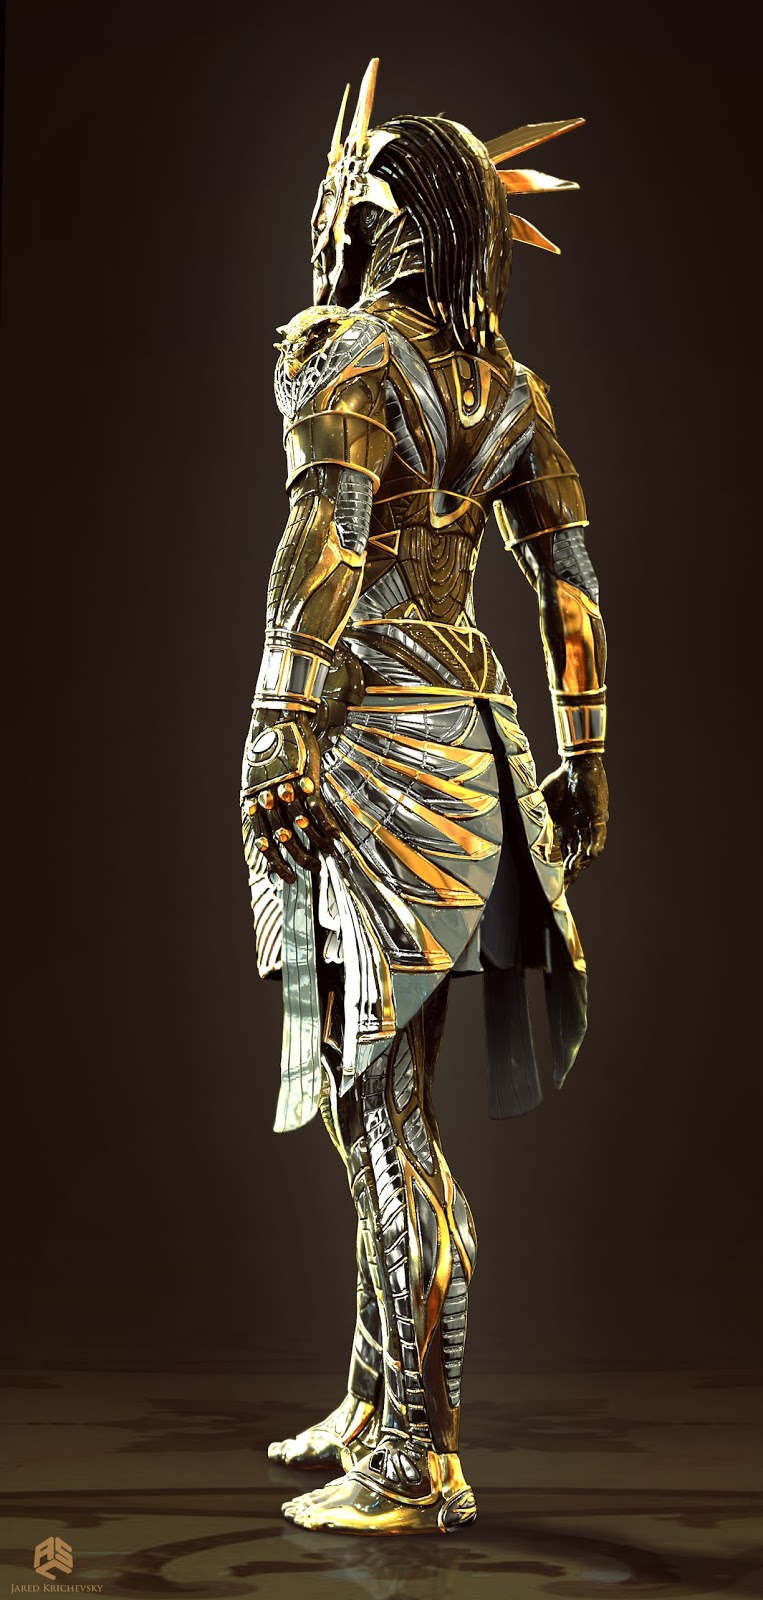 Gods of Egypt Concept Art by Jared Krichevsky | Concept